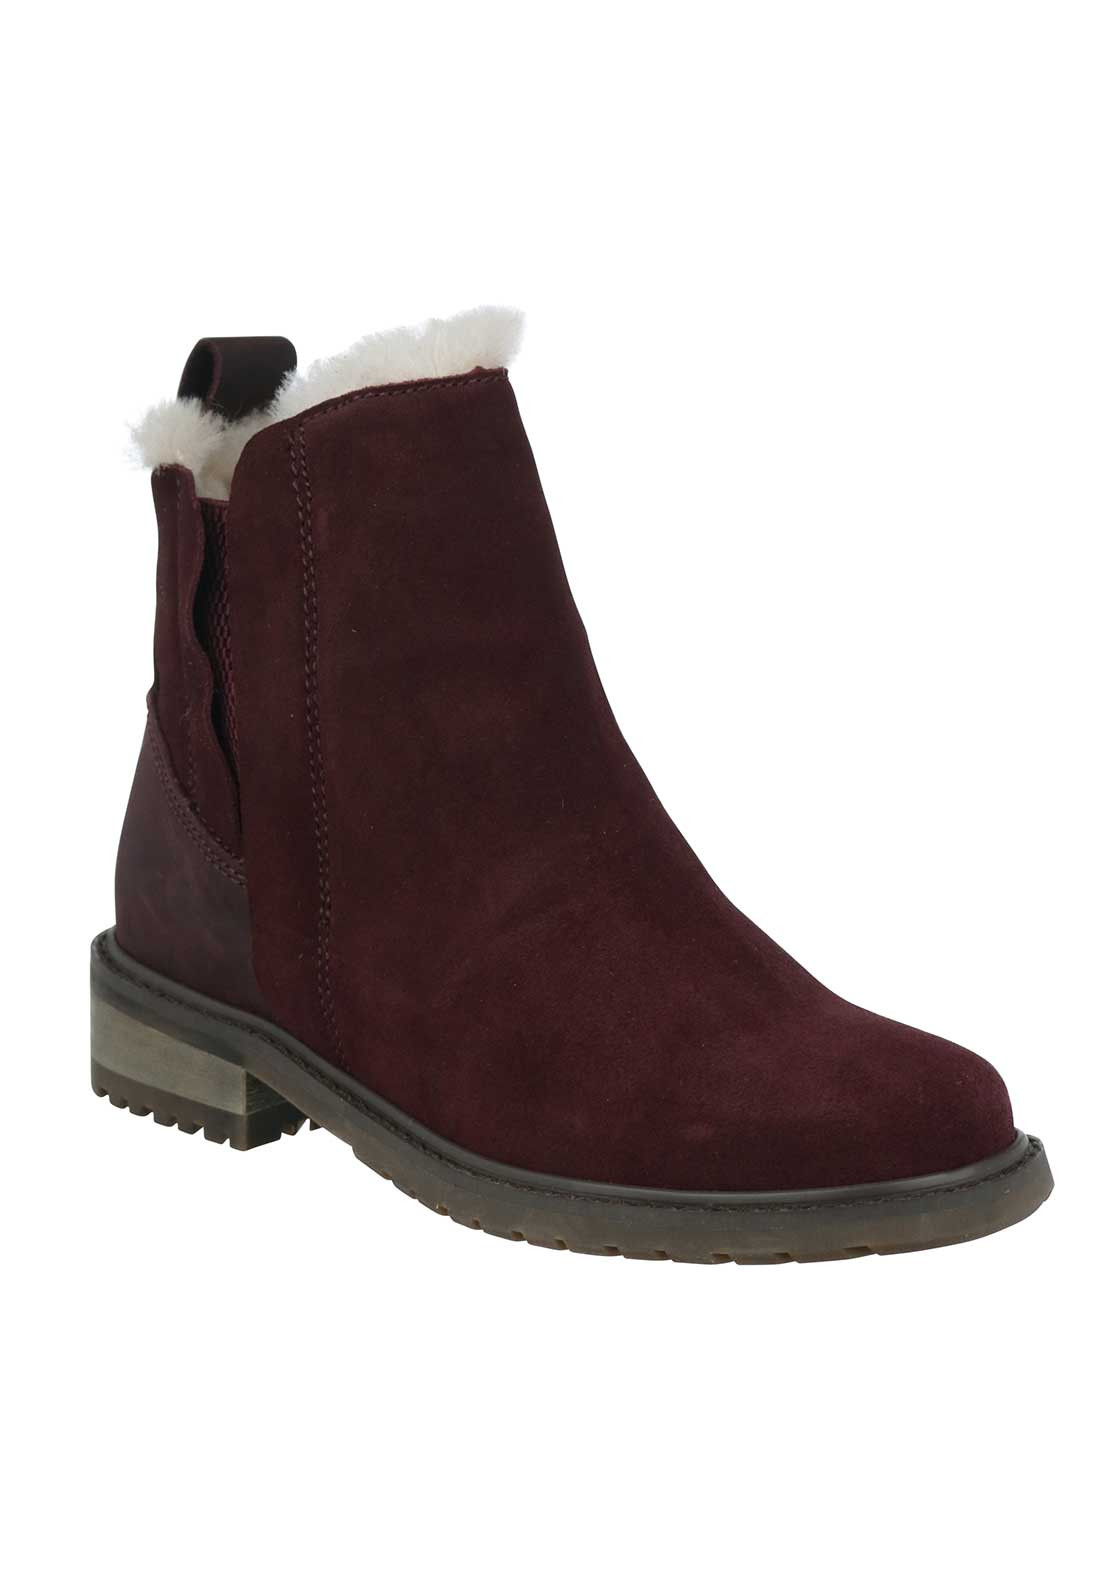 EMU Australia Pioneer Suede Ankle Boots, Wine